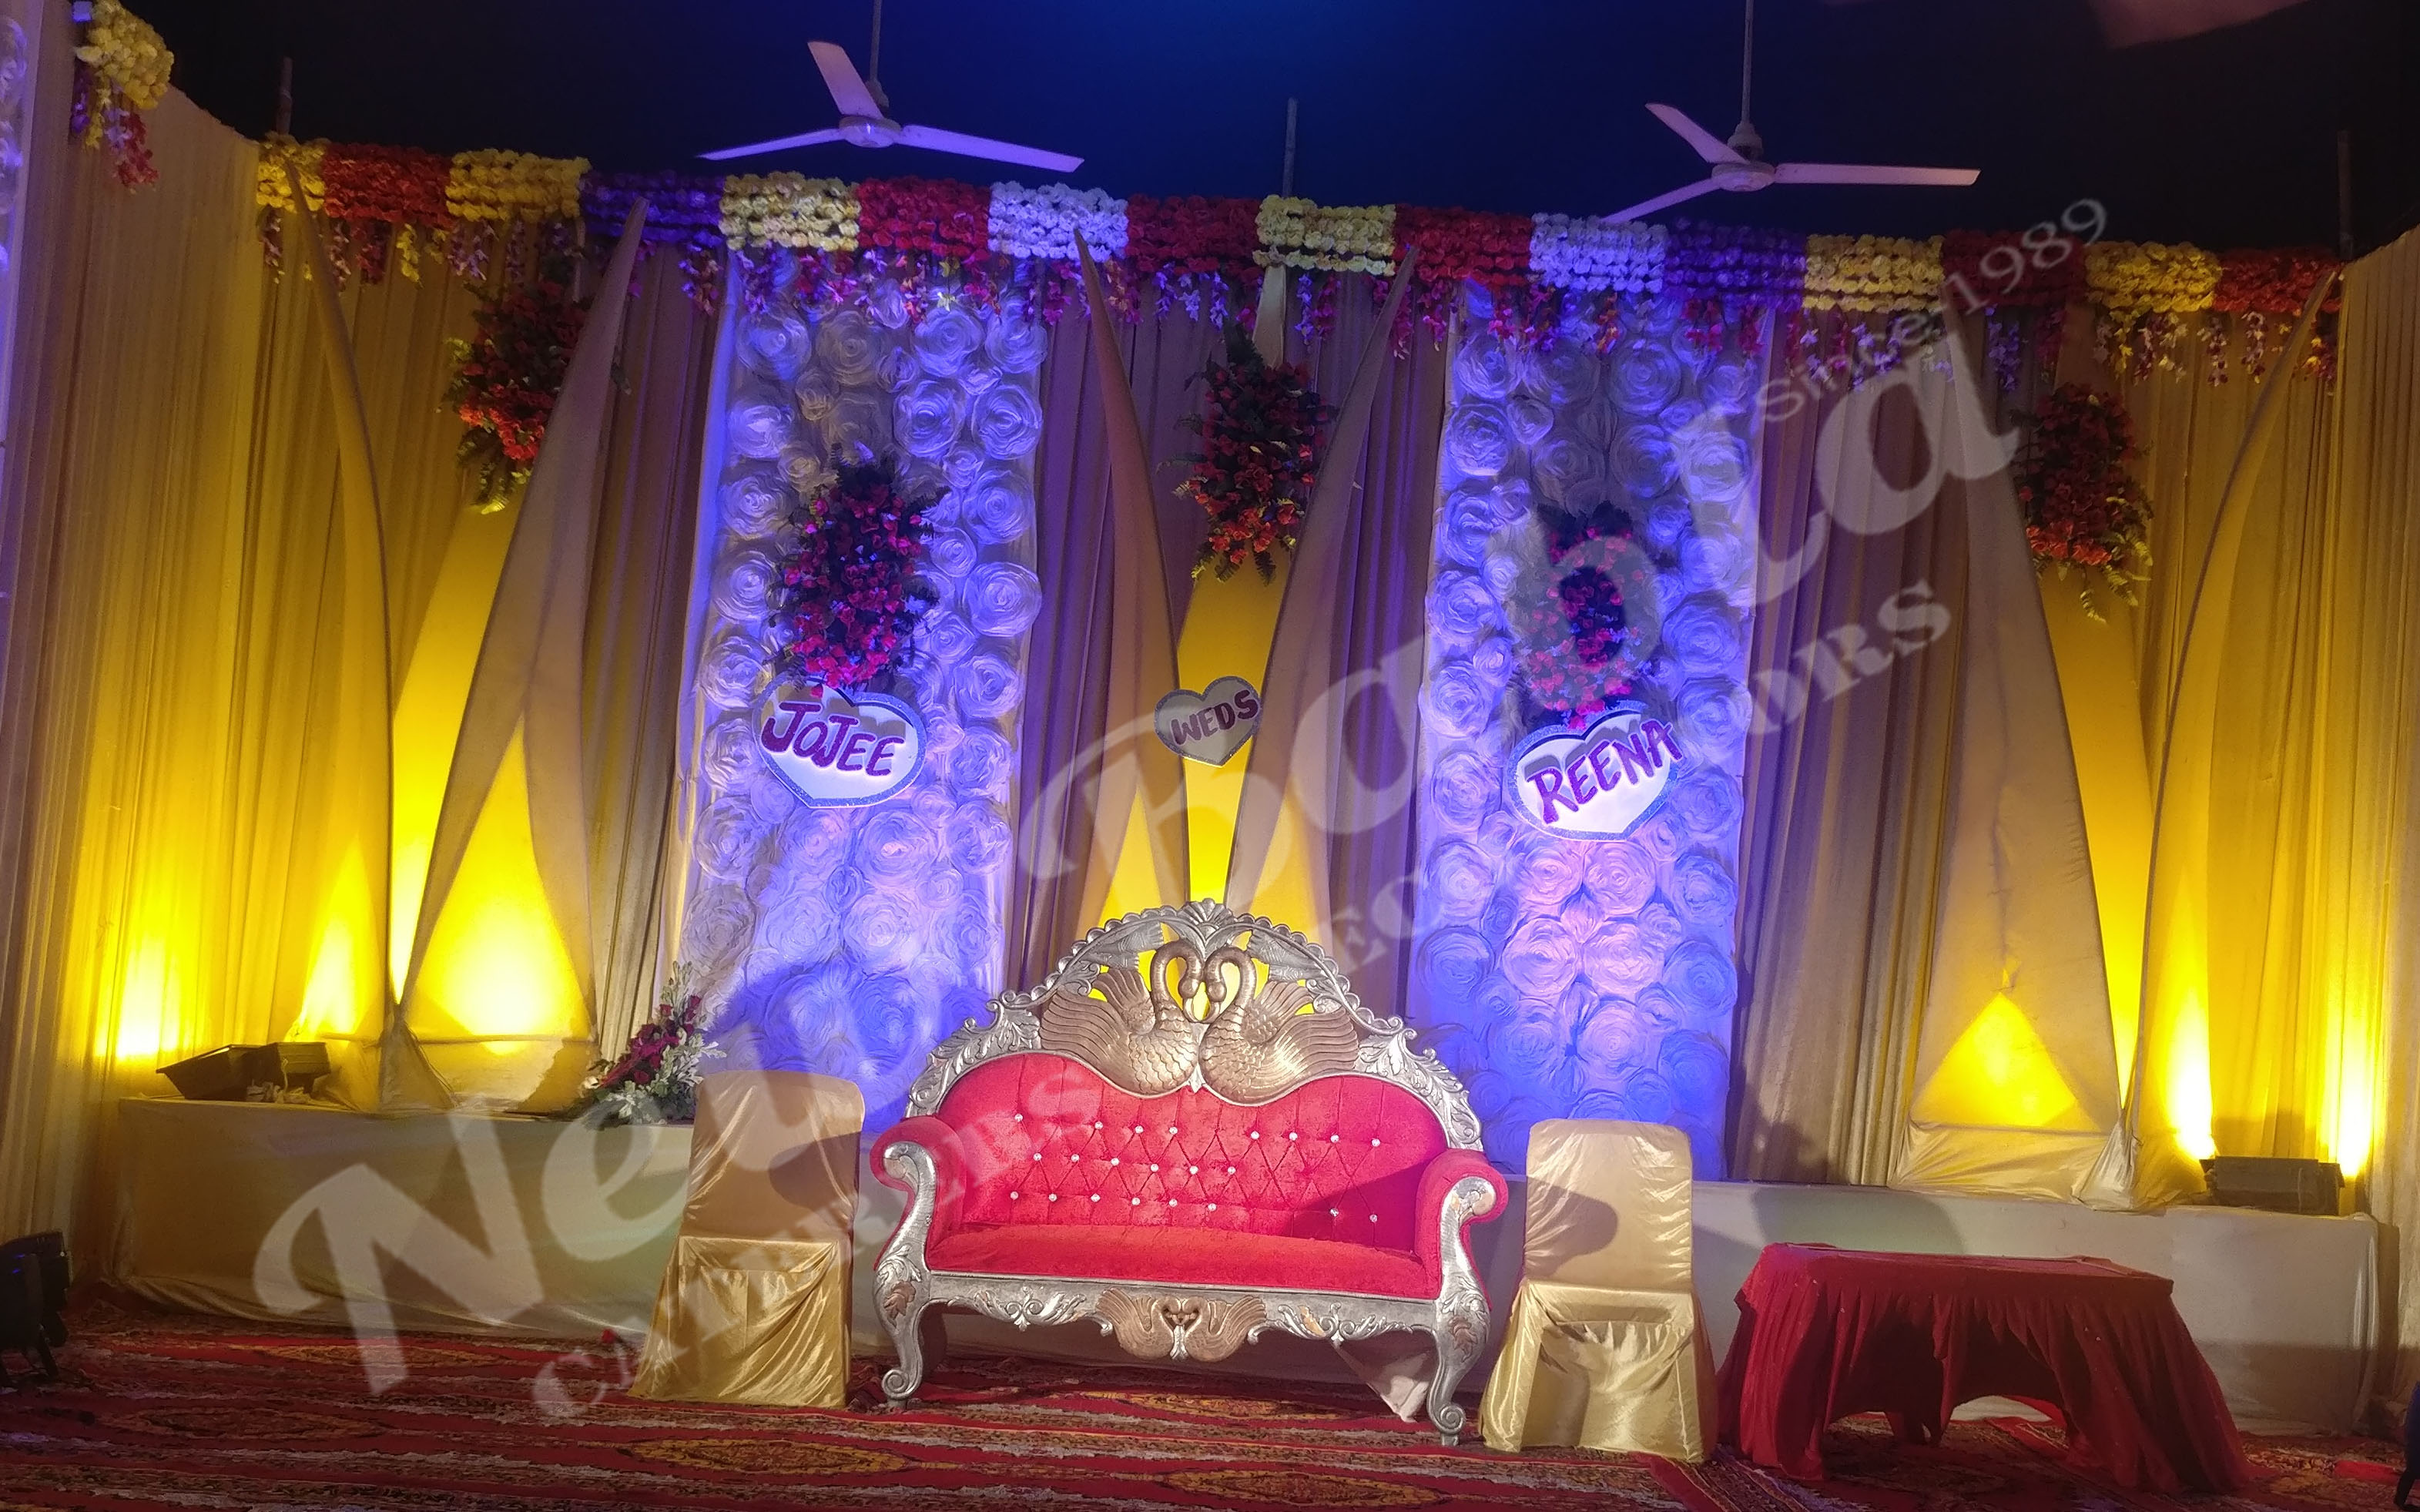 New babla caterers services with the support of our adroit team of professionals we are providing wedding decoration service to the clients at pocket friendly prices junglespirit Gallery